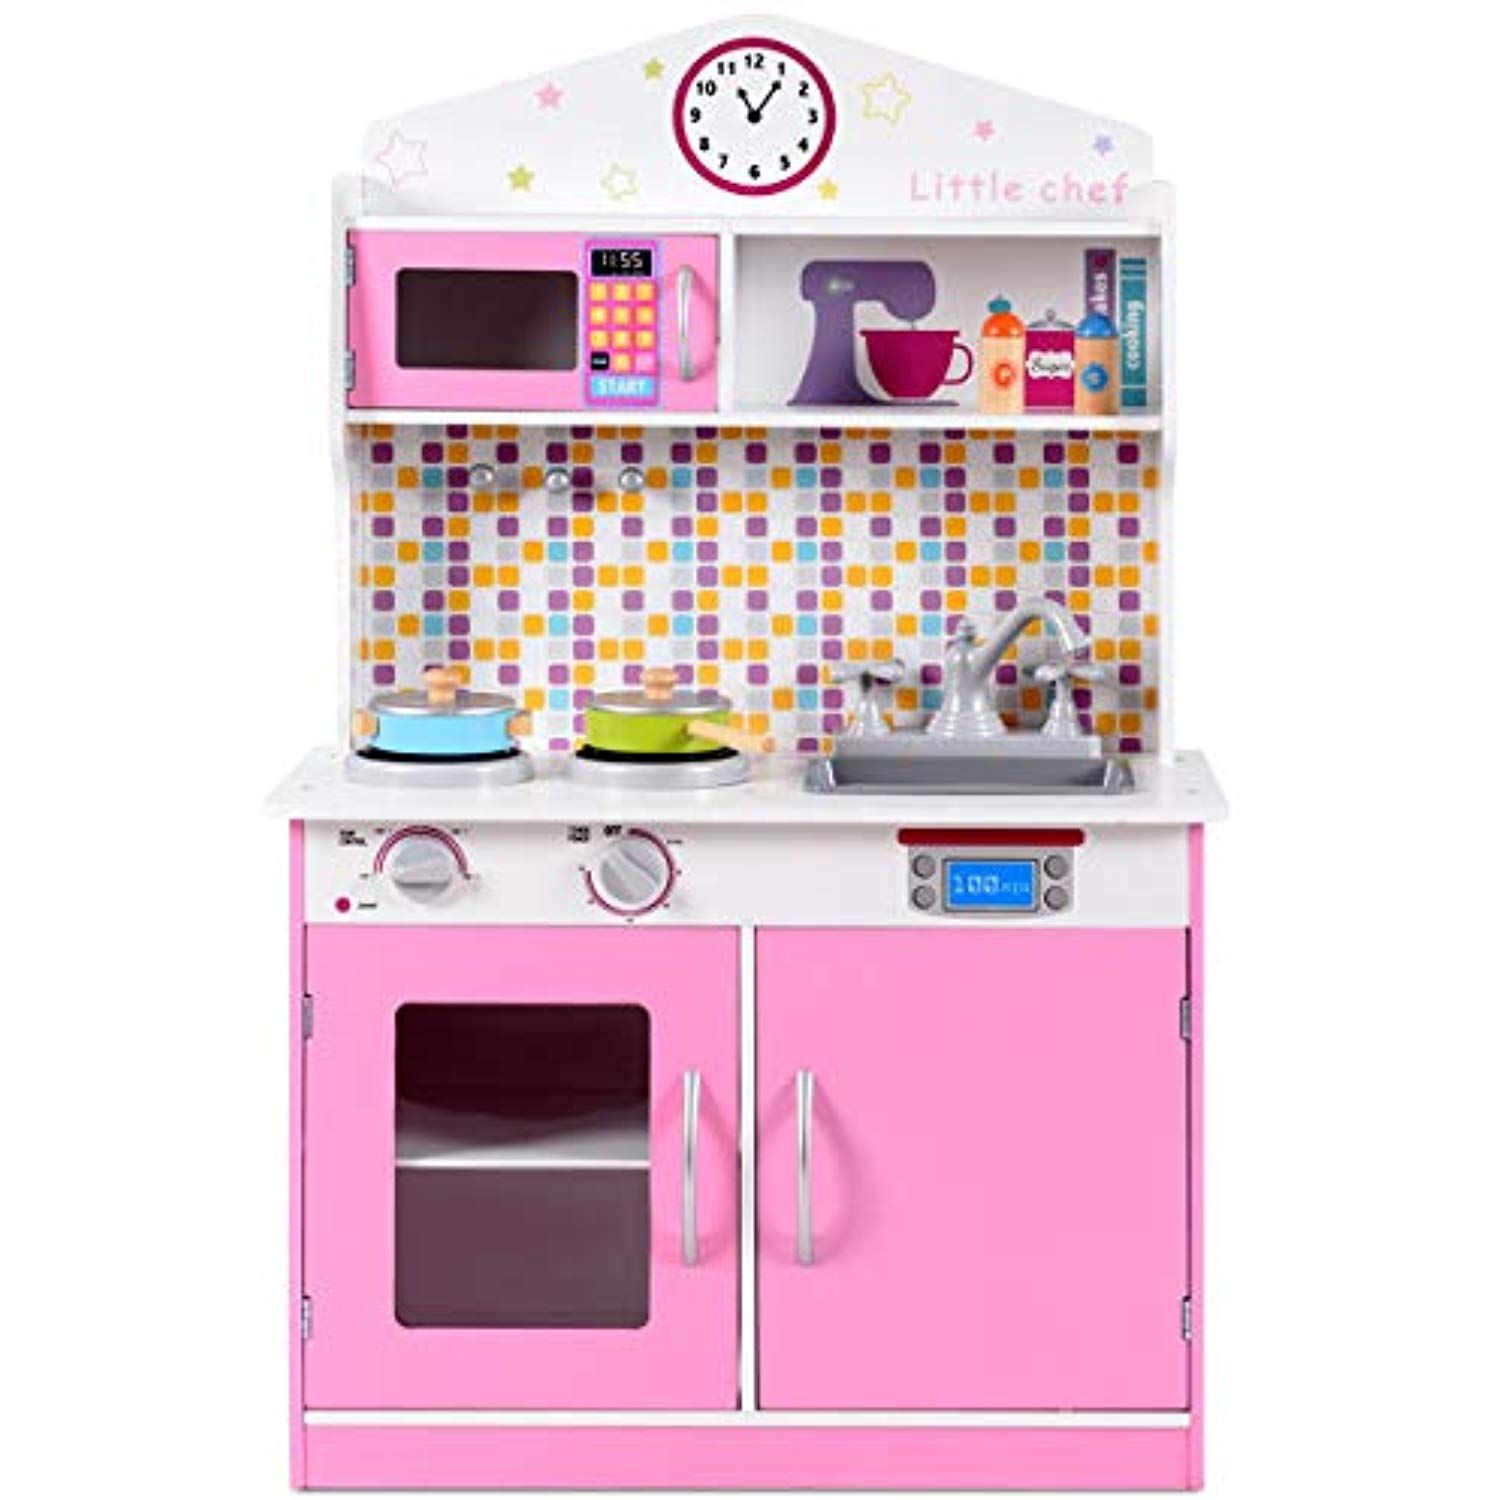 Globe House Products Ghp 22 5 X12 X37 5 Mdf Kids Wooden Little Chef Kitchen Toy Pretend Cooking Playset Check Pretend Kitchen Toy Kitchen Play Kitchen Sets